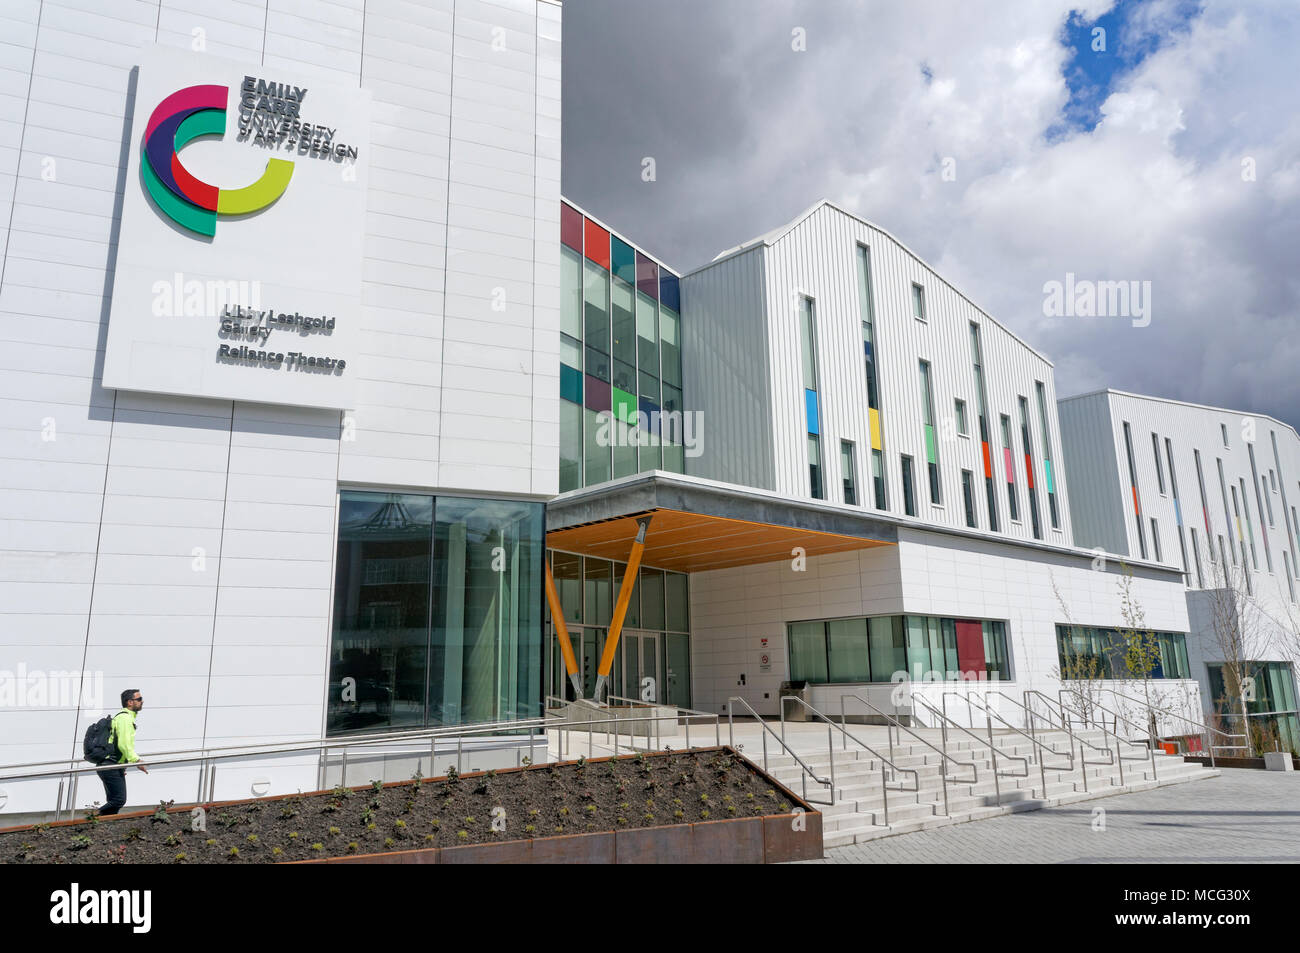 New campus of the Emily Carr University of Art and Design that opened in 2017 on Great Northern Way in Vancouver, BC, Canada - Stock Image